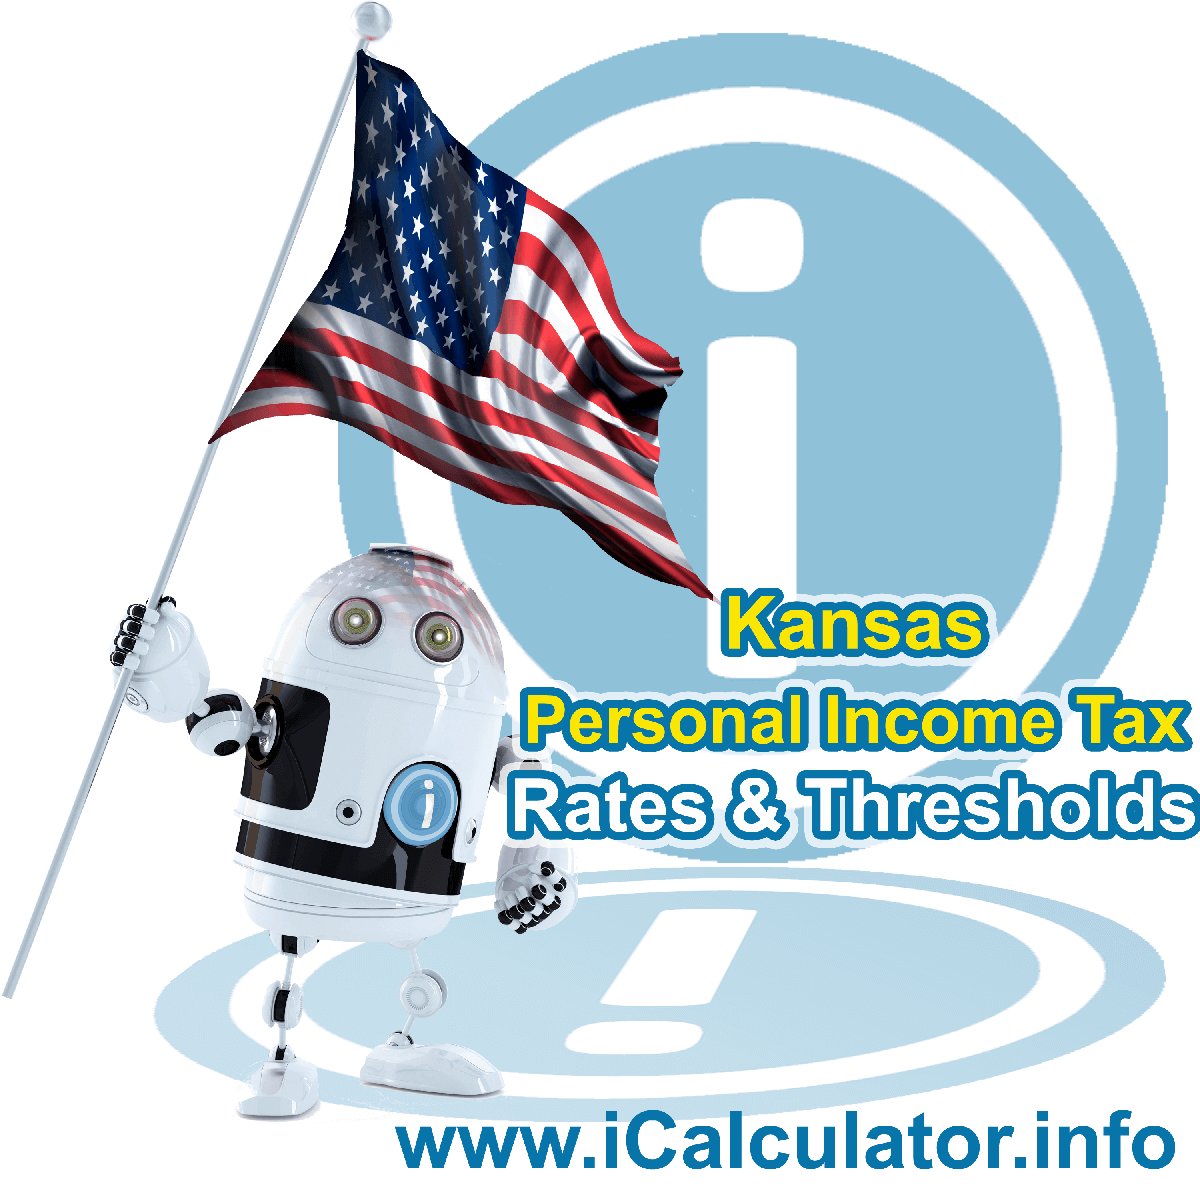 Kansas State Tax Tables 2019. This image displays details of the Kansas State Tax Tables for the 2019 tax return year which is provided in support of the 2019 US Tax Calculator